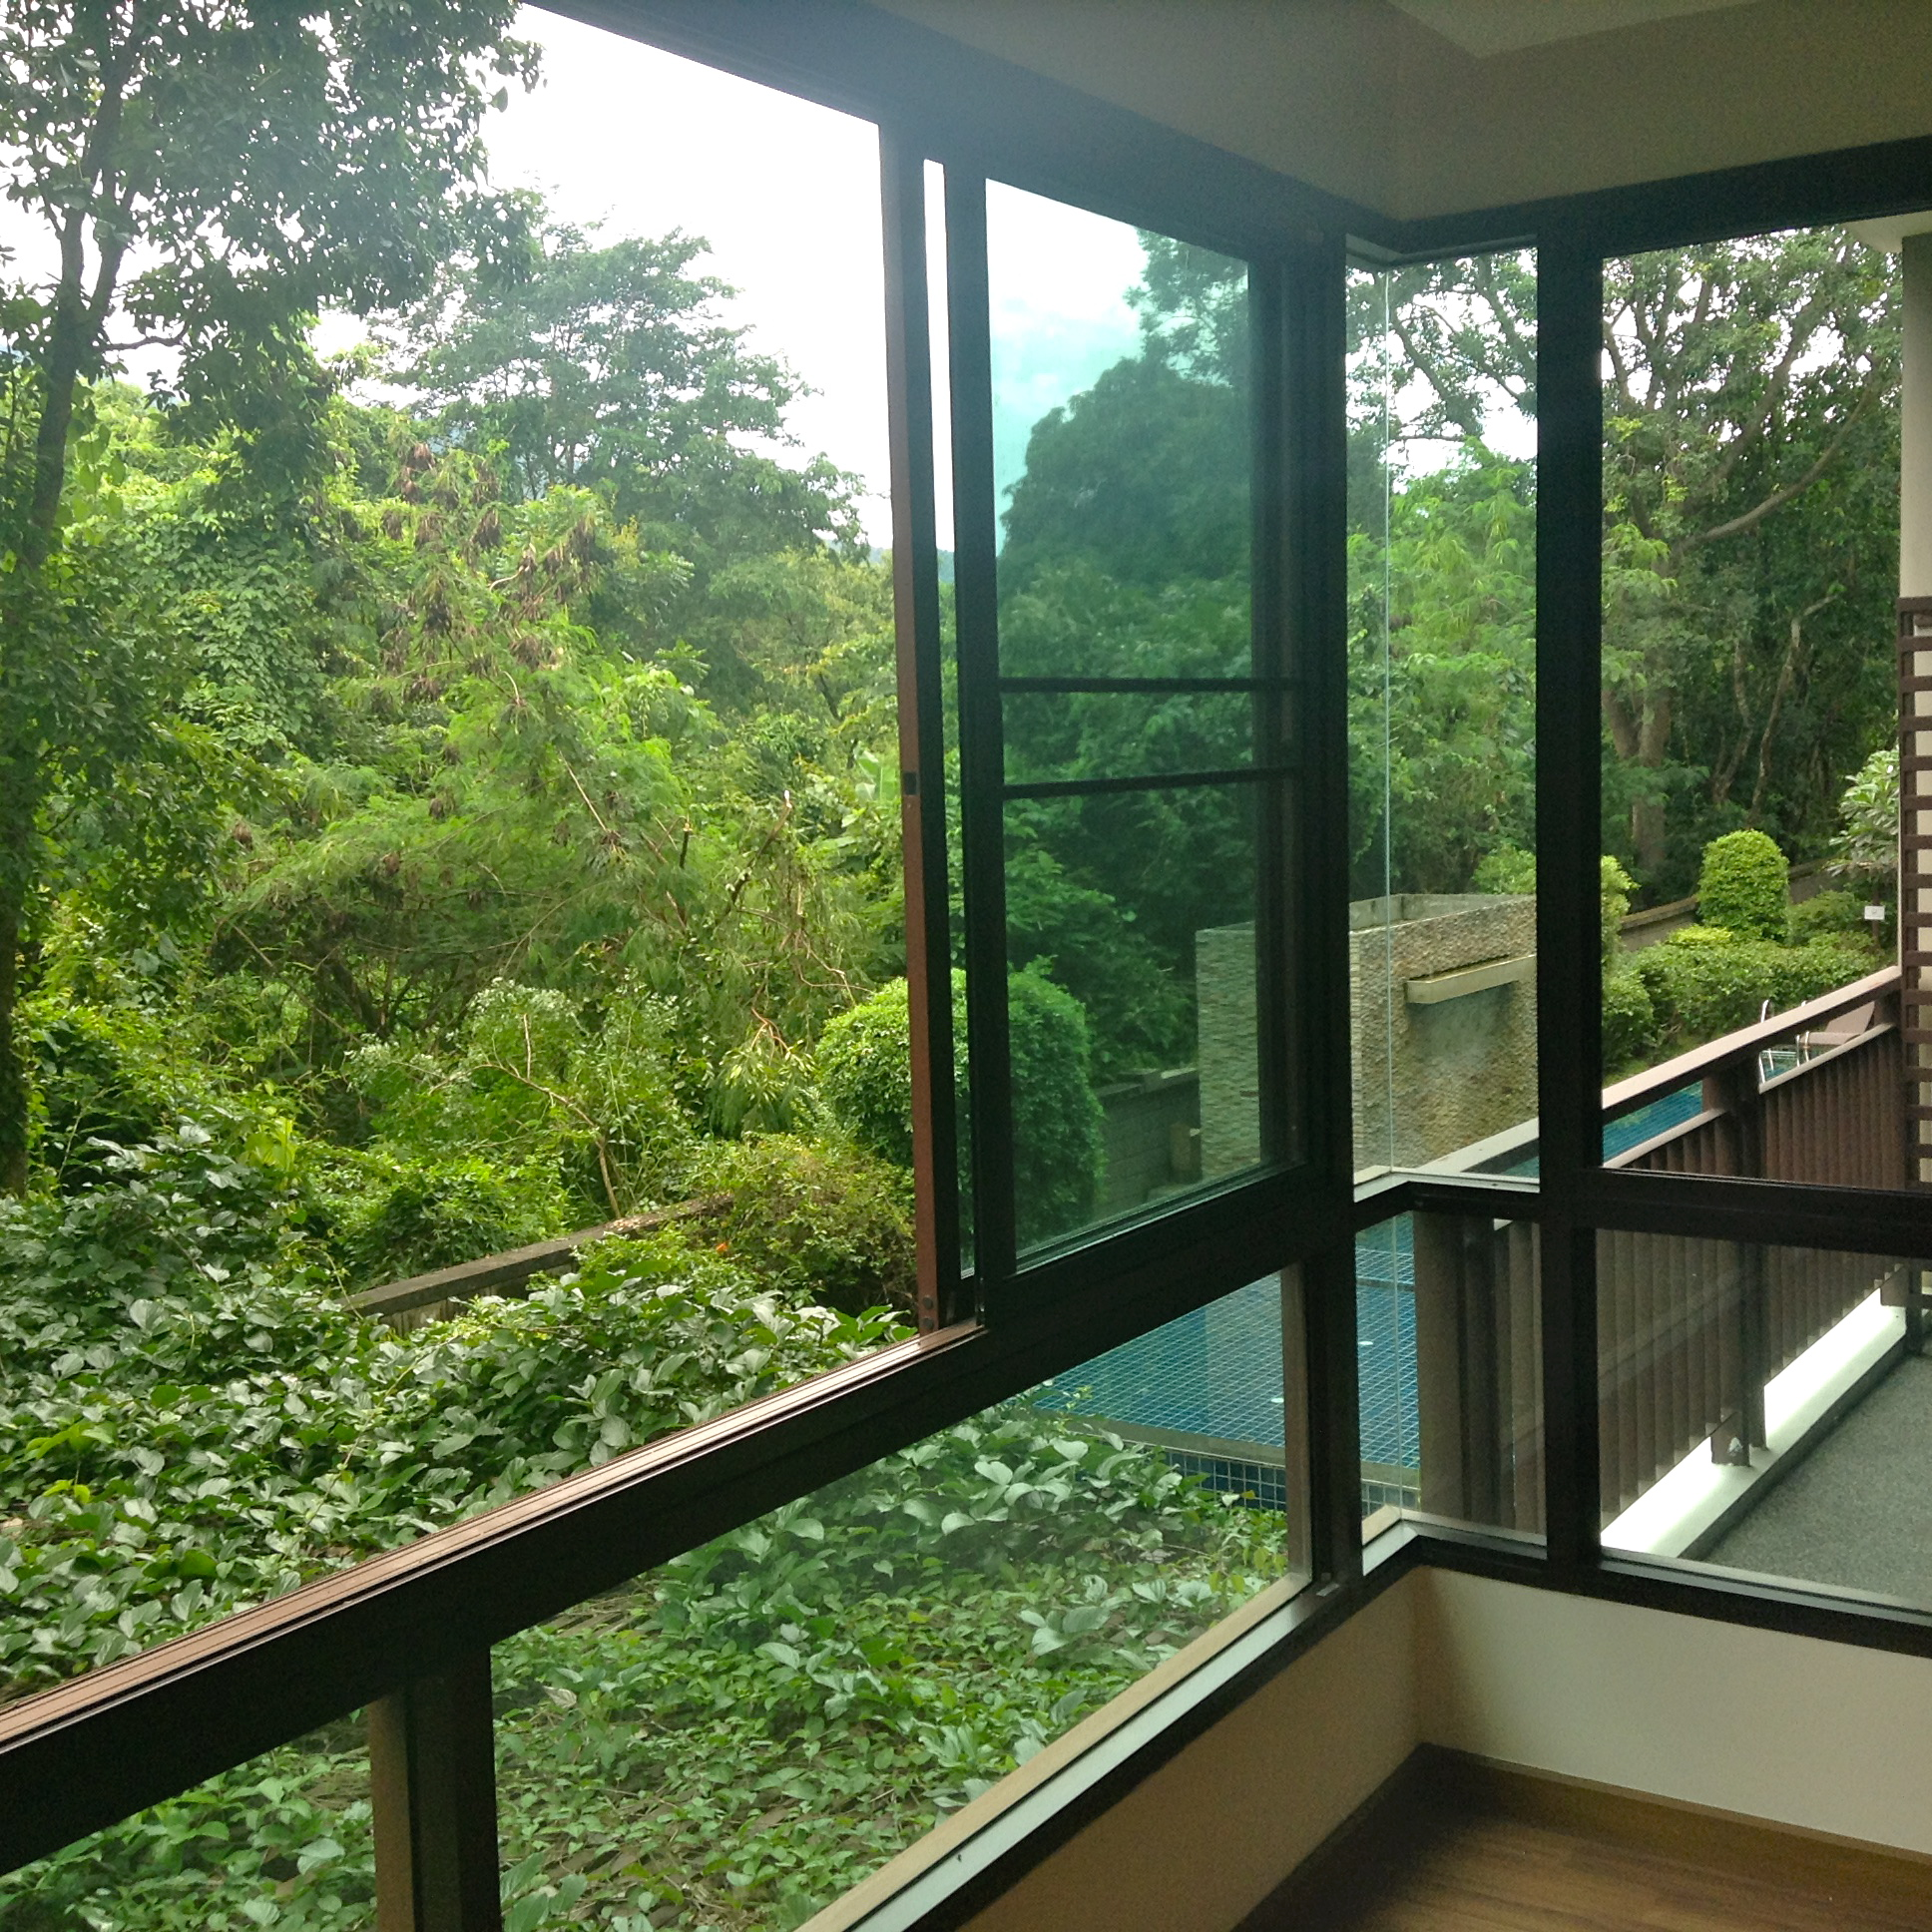 1 Bdrm Condo For Rent: Cr1220 Cs721 Nice 1 Bedroom Condo For Rent In Chiang Mai City